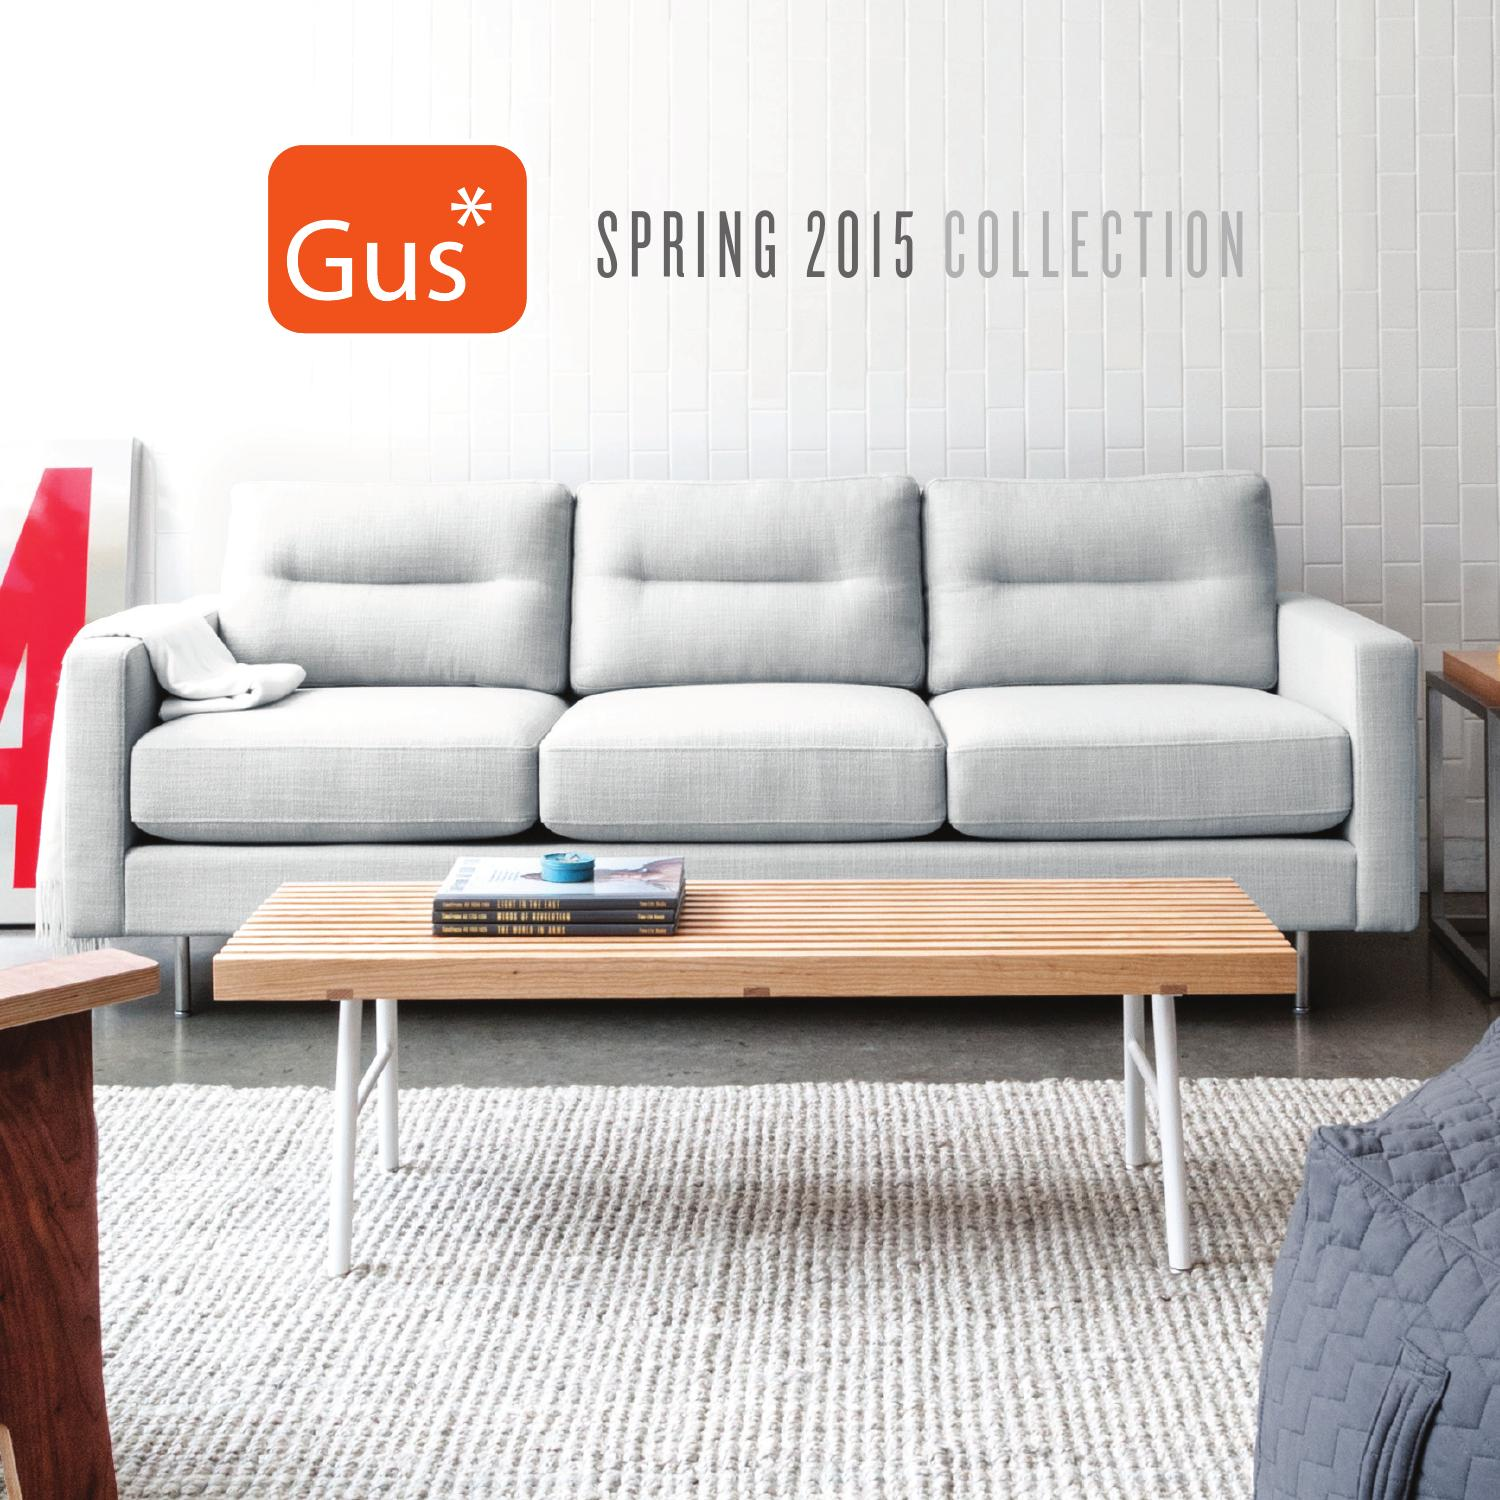 Gus Modern Spring 2015 Collection